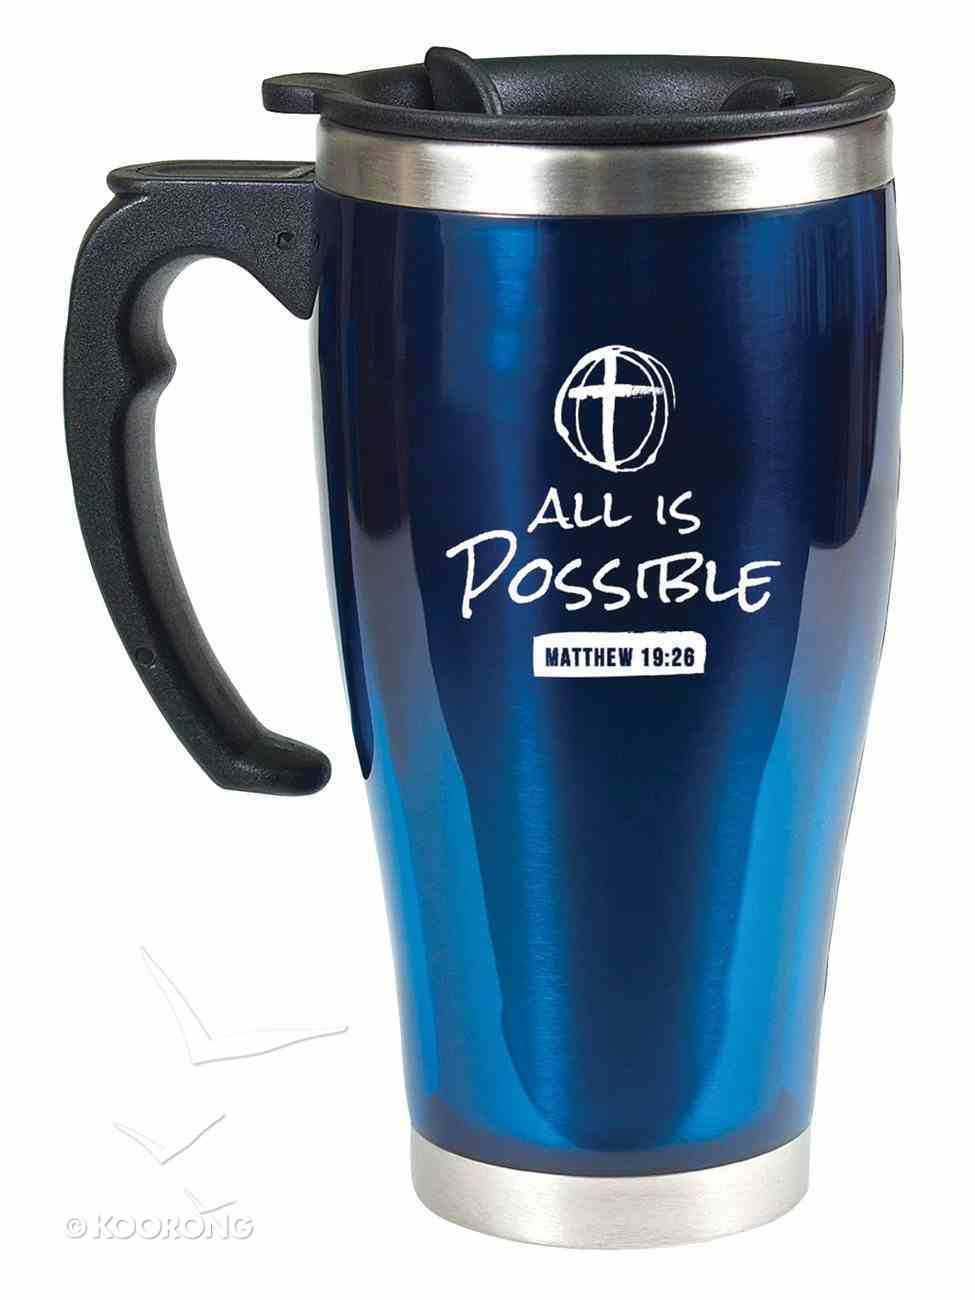 Stainless Steel Travel Mug With Handle: All is Possible (Matthew 19:26) Homeware